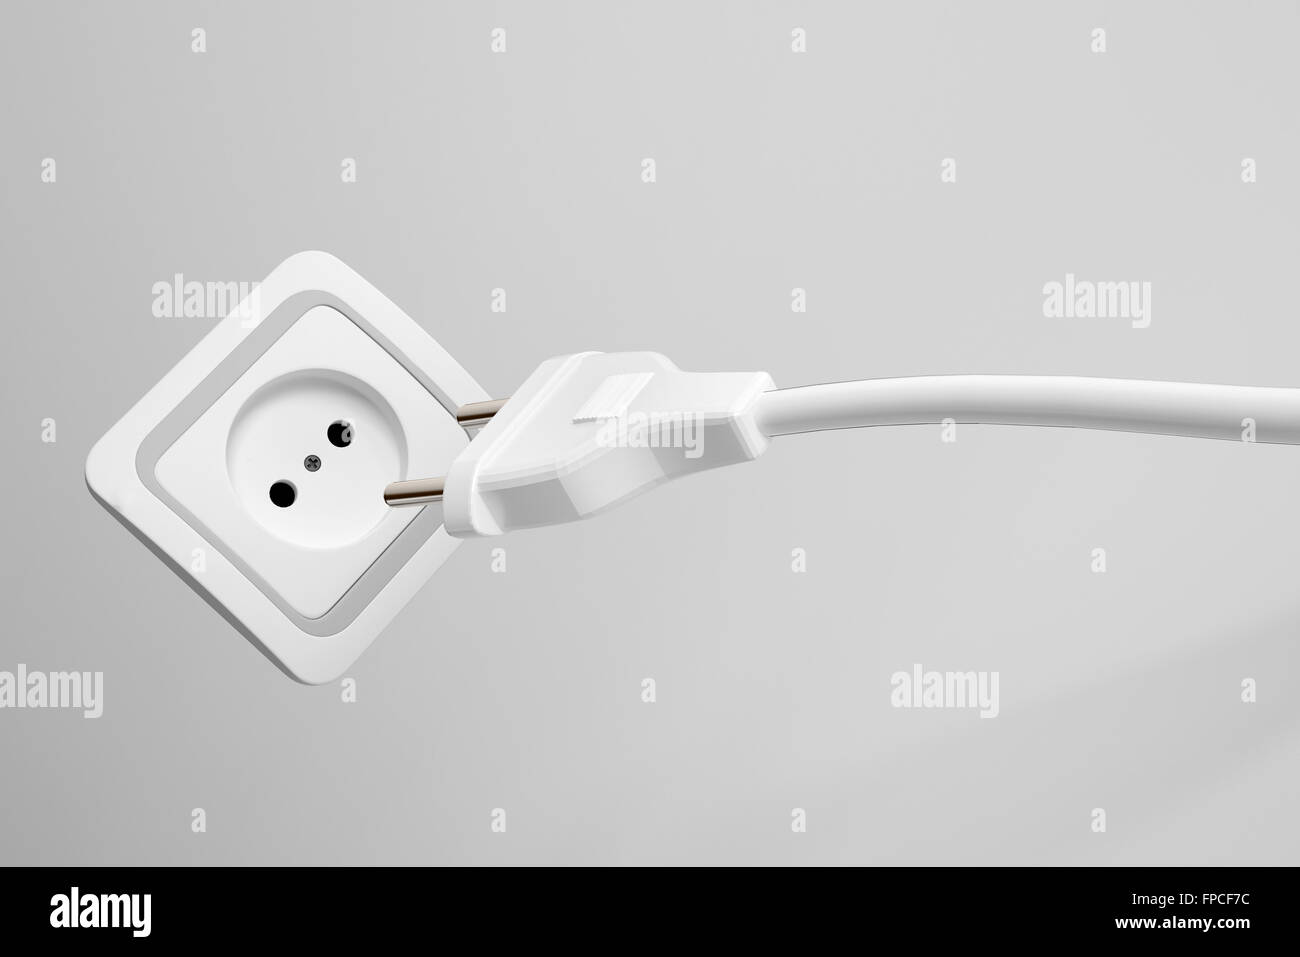 Two prong plug, cord and electrical power outlet providing a supply ...